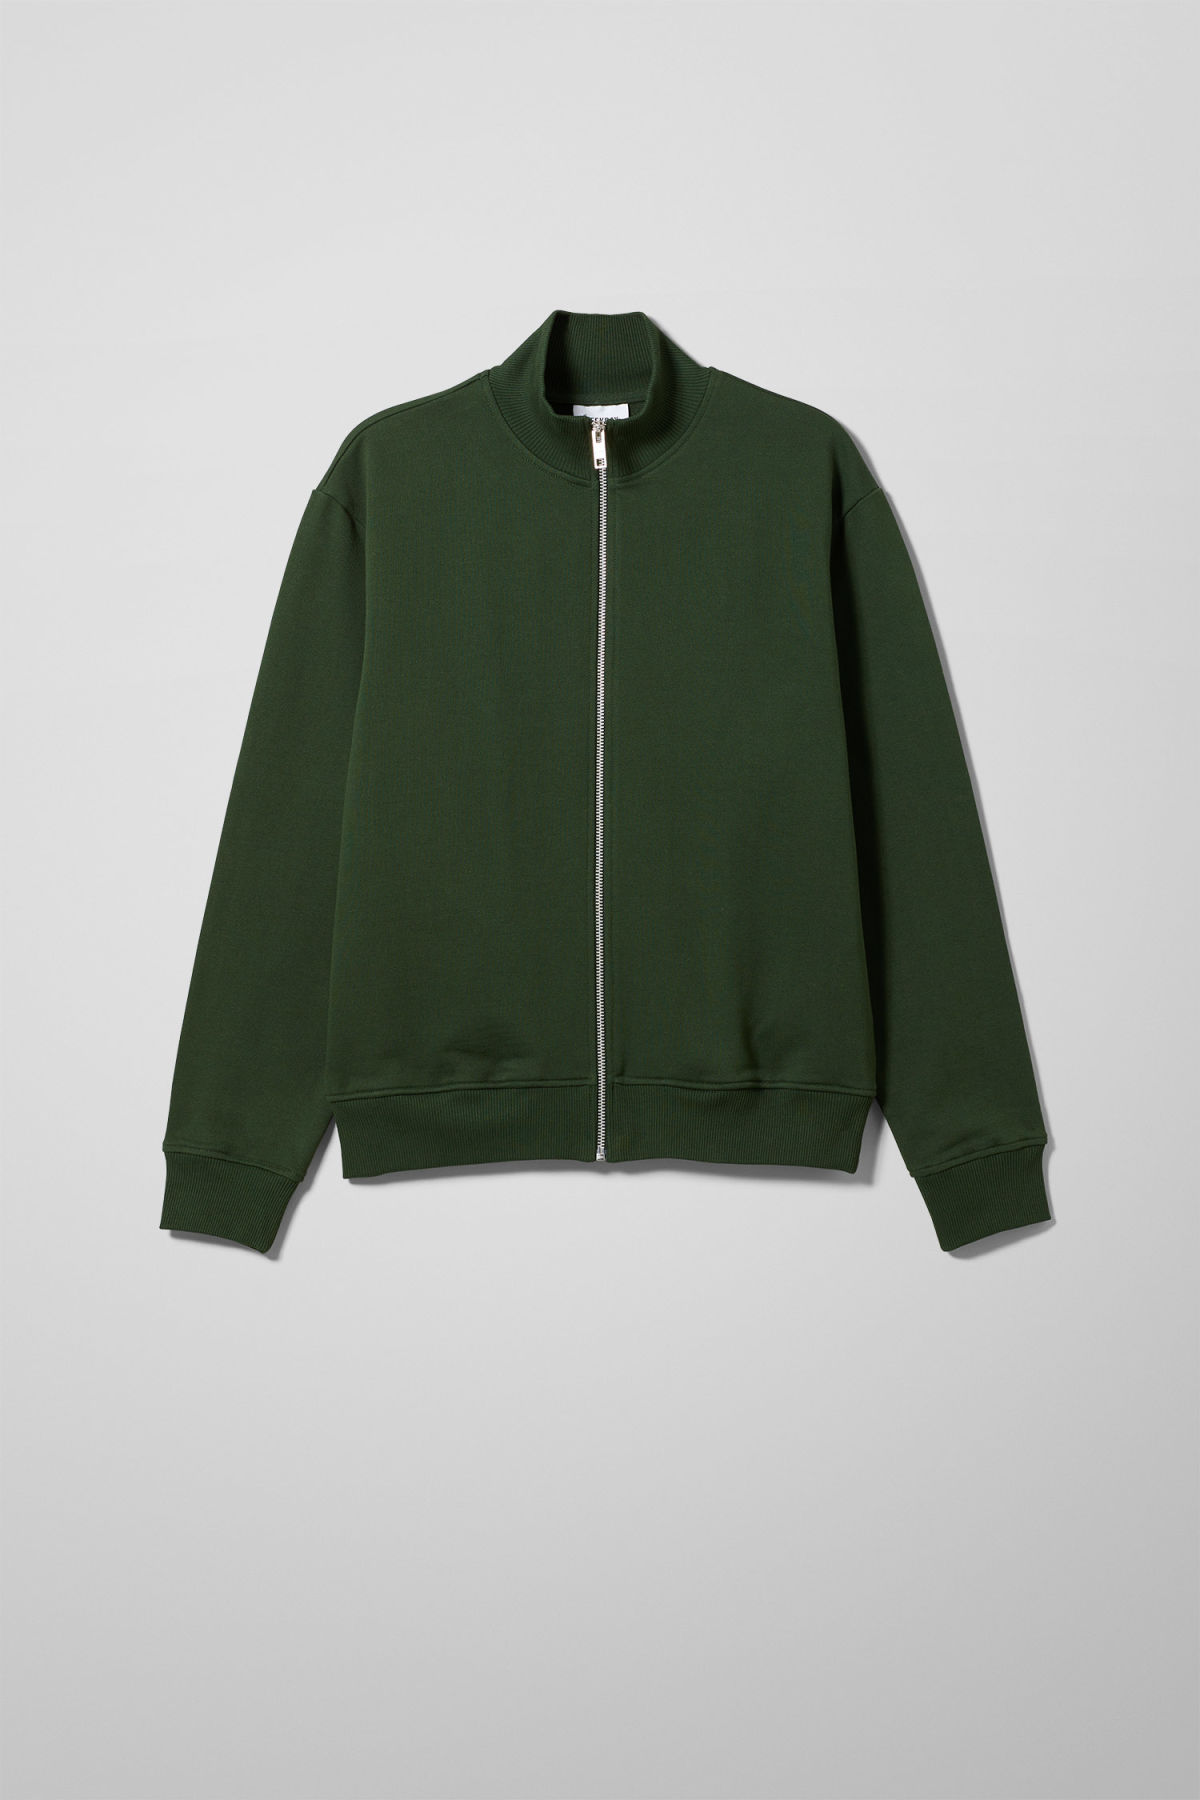 Otis Zip Sweatshirt - Green